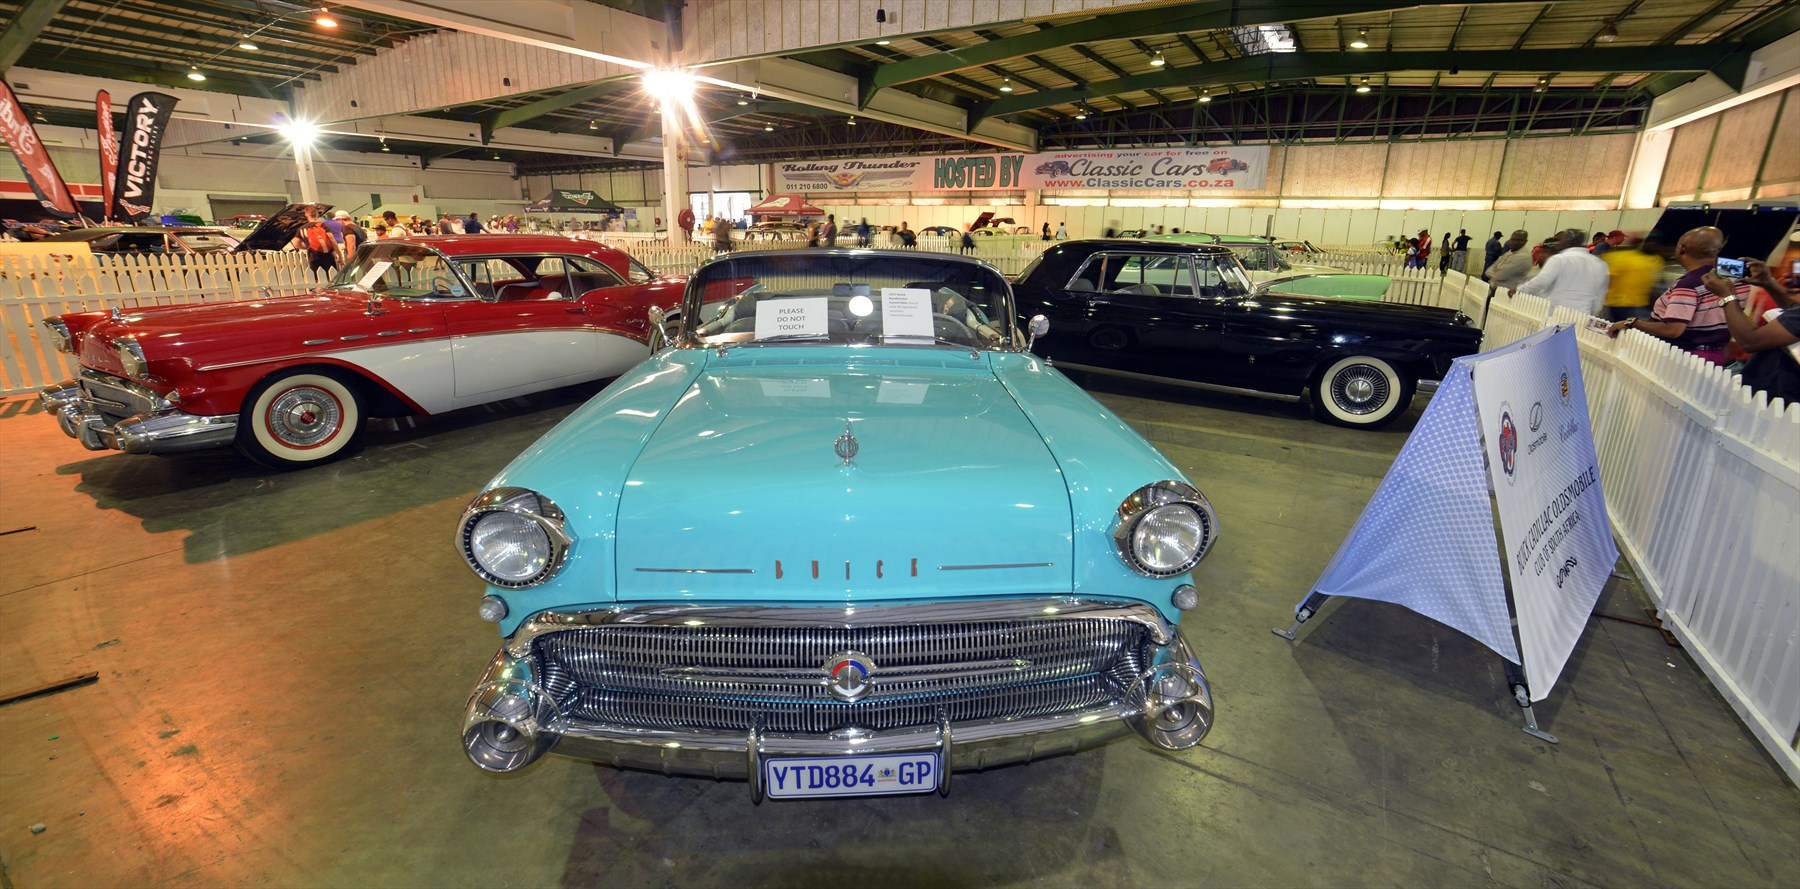 rand-show-buick-classic_1800x1800